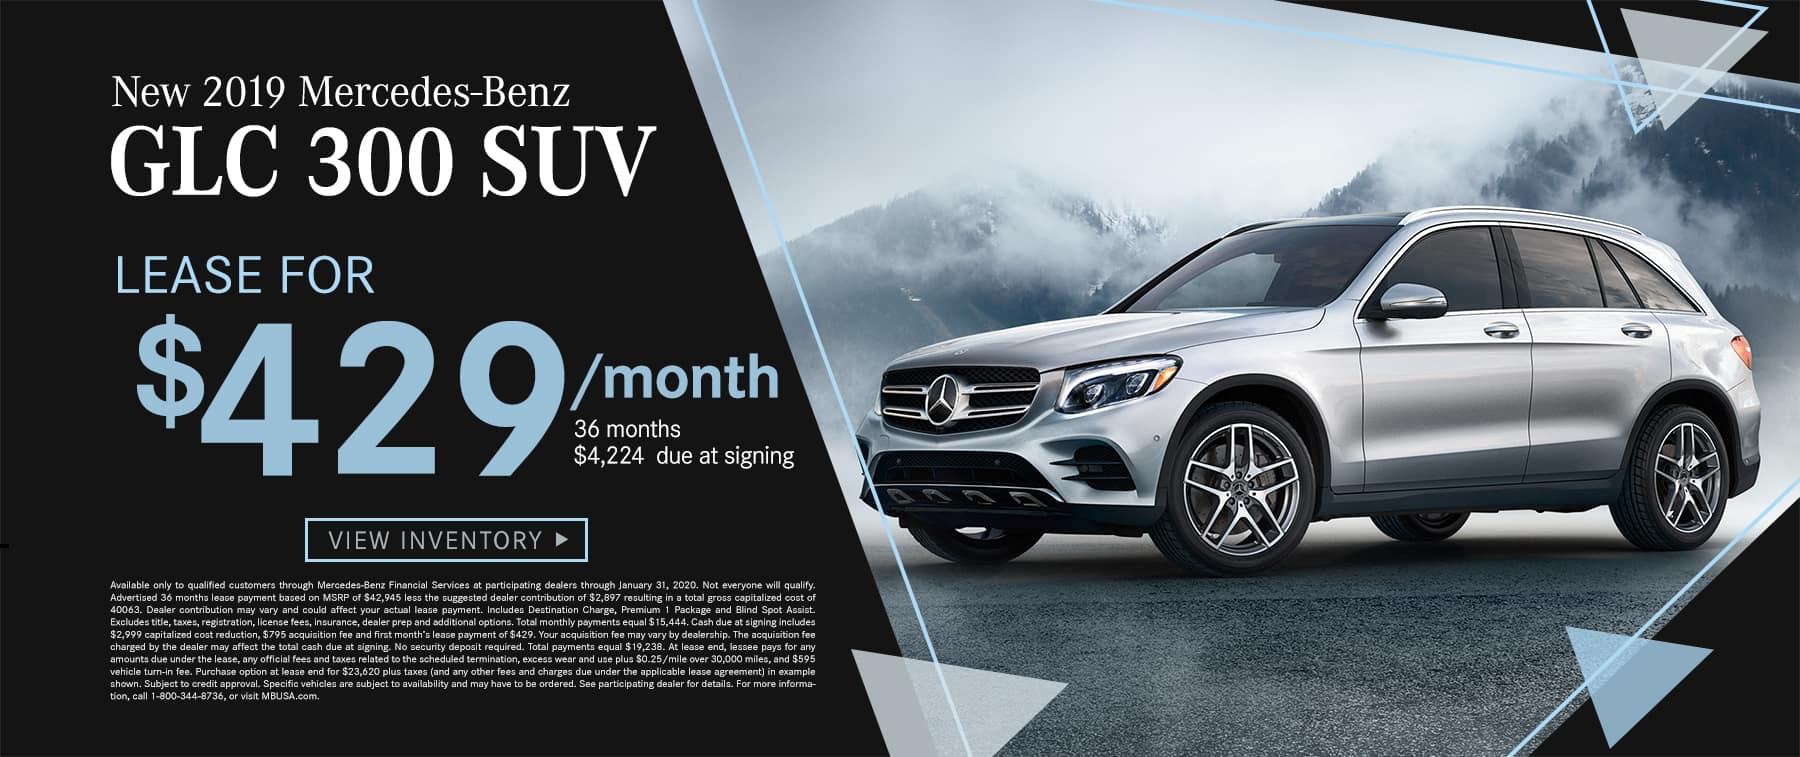 2019 GLC 300 SUV $409 Per Month 36 Months/10k Miles $4573 Due at signing